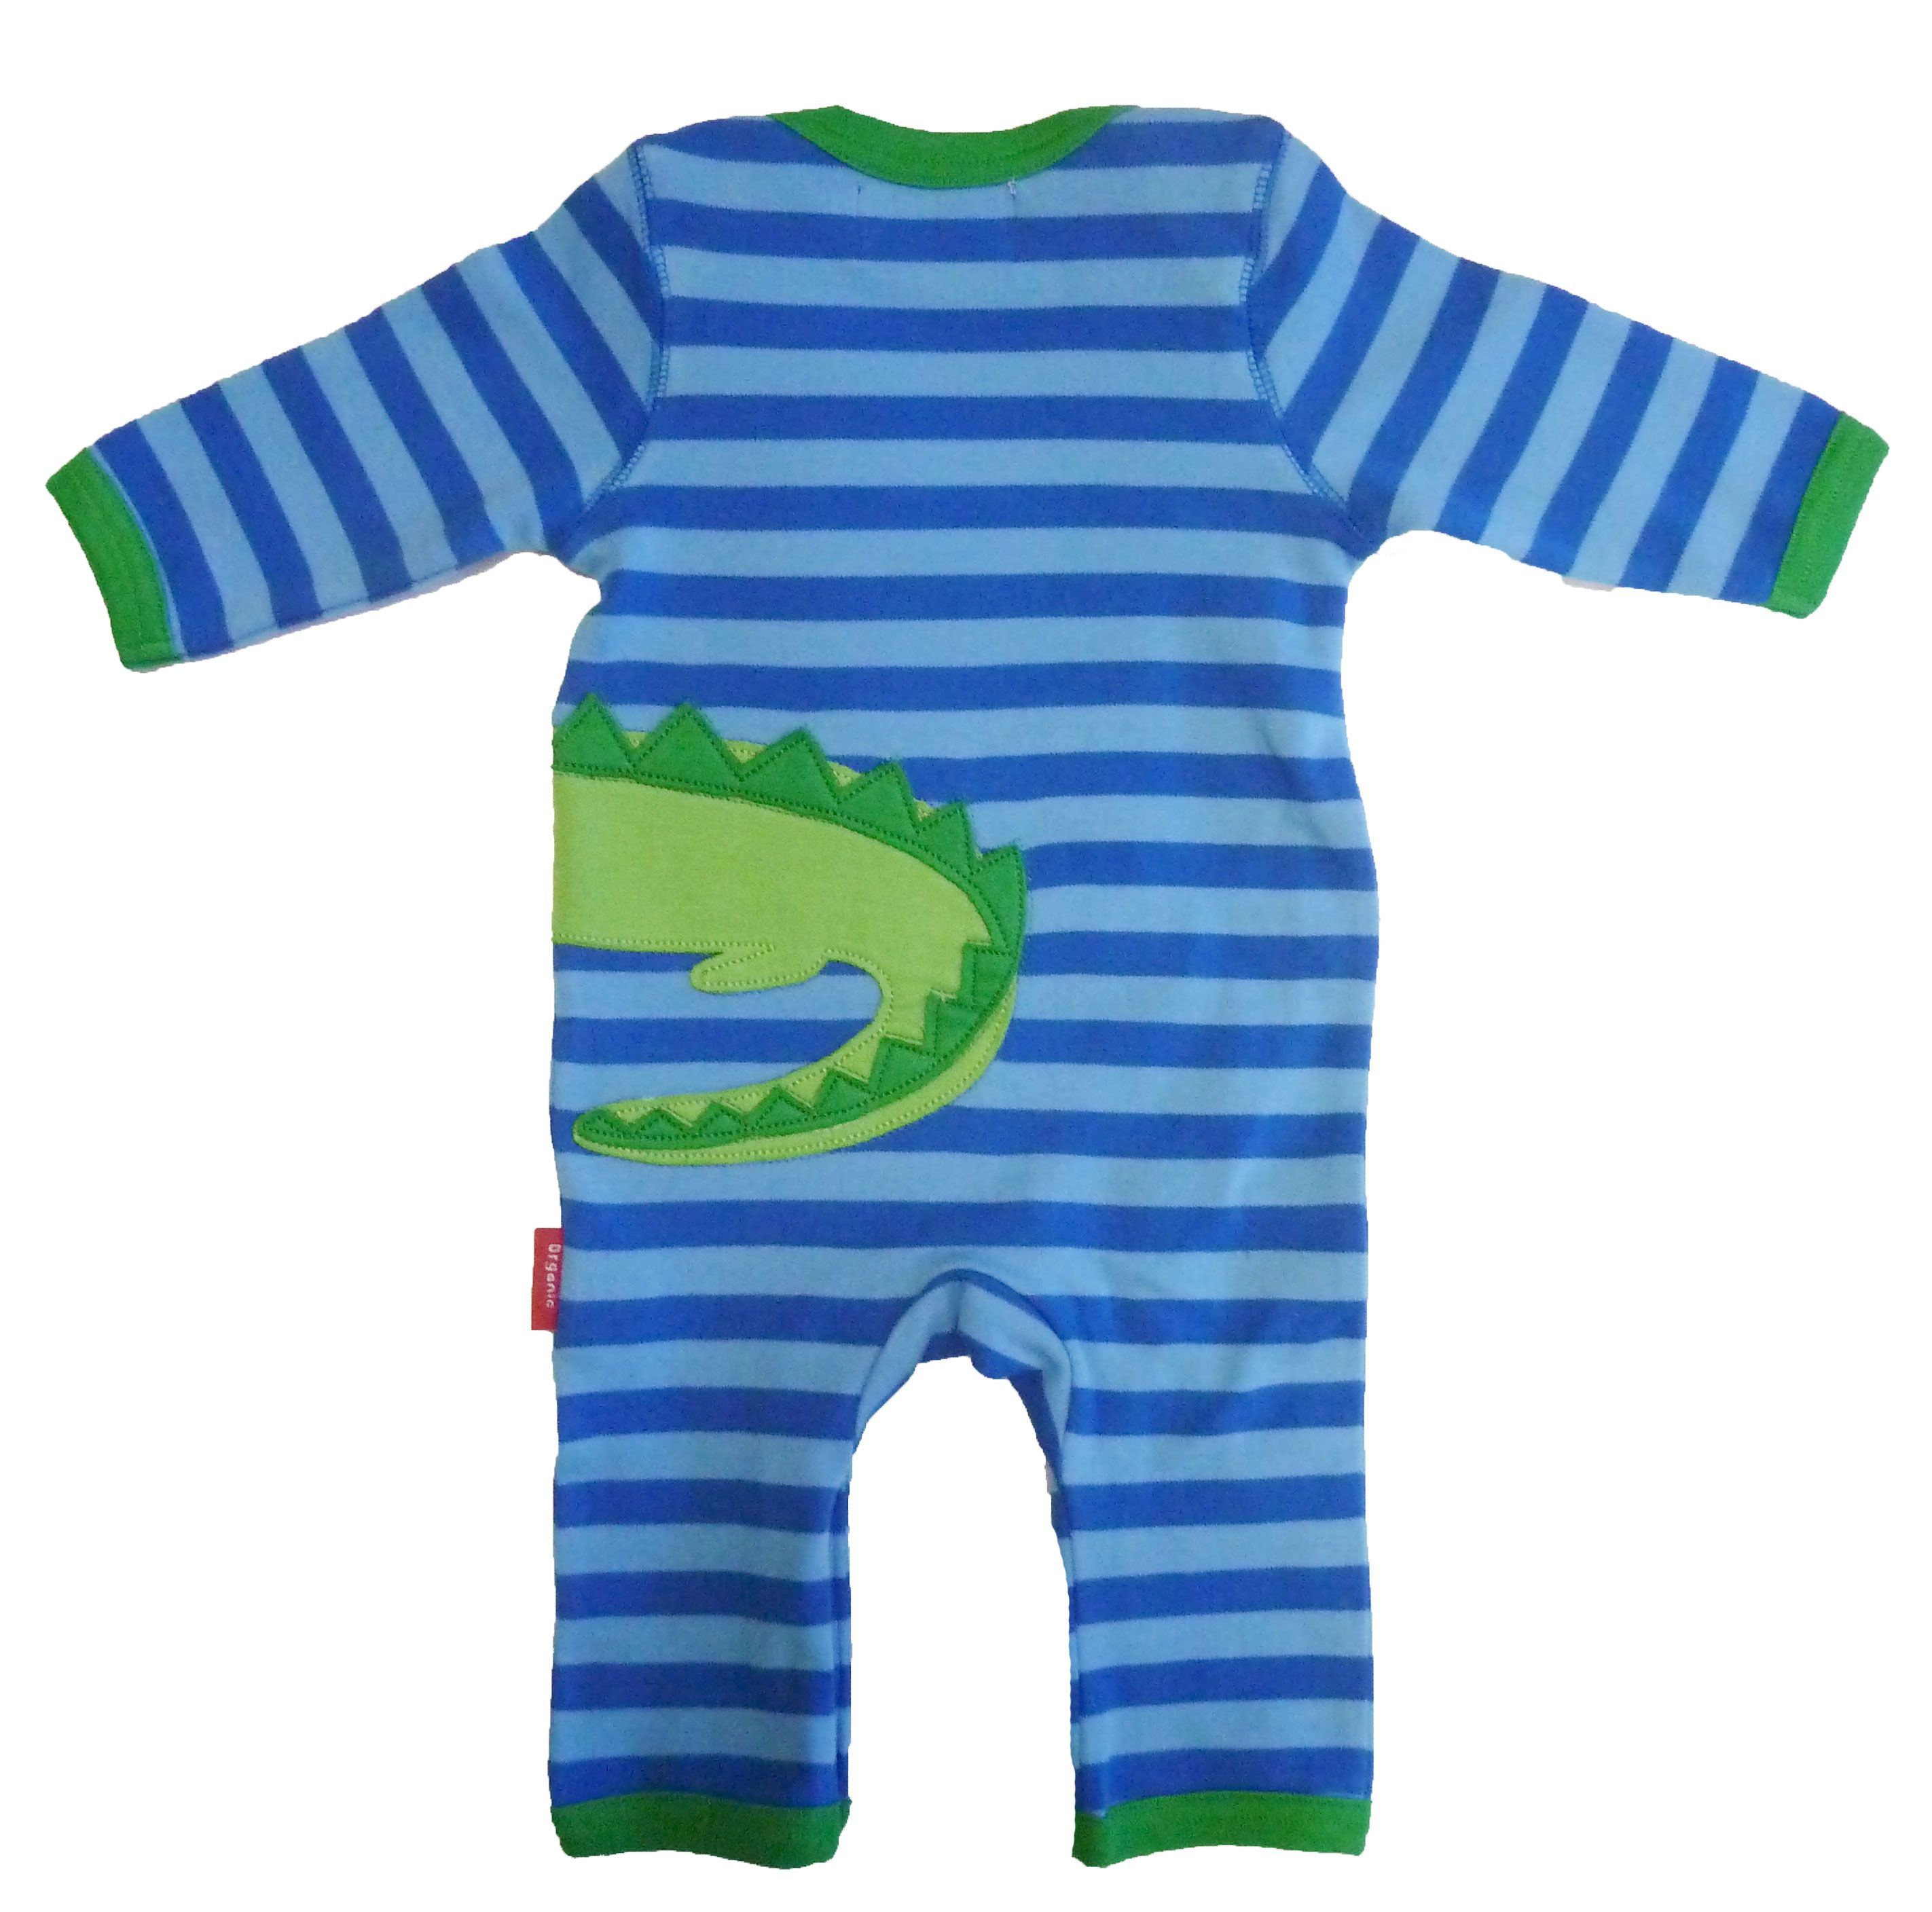 Boy`s organic cotton croc sleepsuit